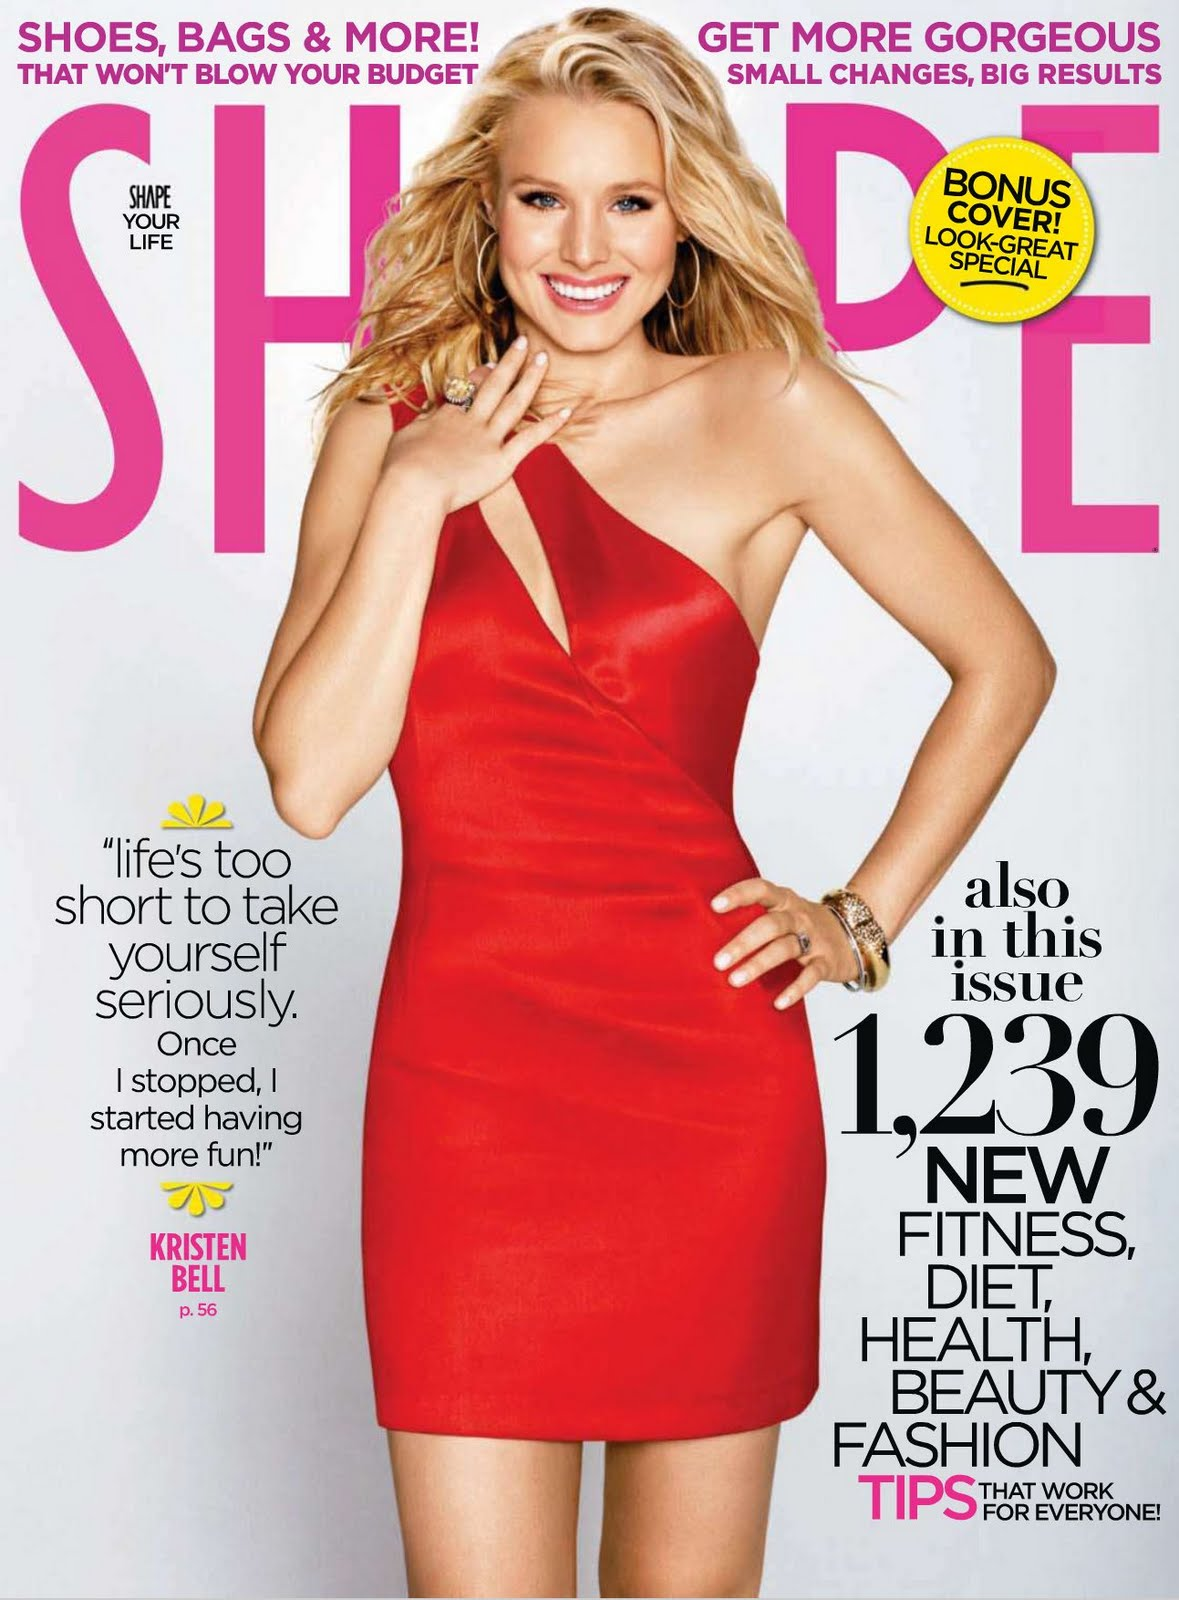 celebritybuzz us kristen bell uncovered body shape magazine hot cover. Black Bedroom Furniture Sets. Home Design Ideas